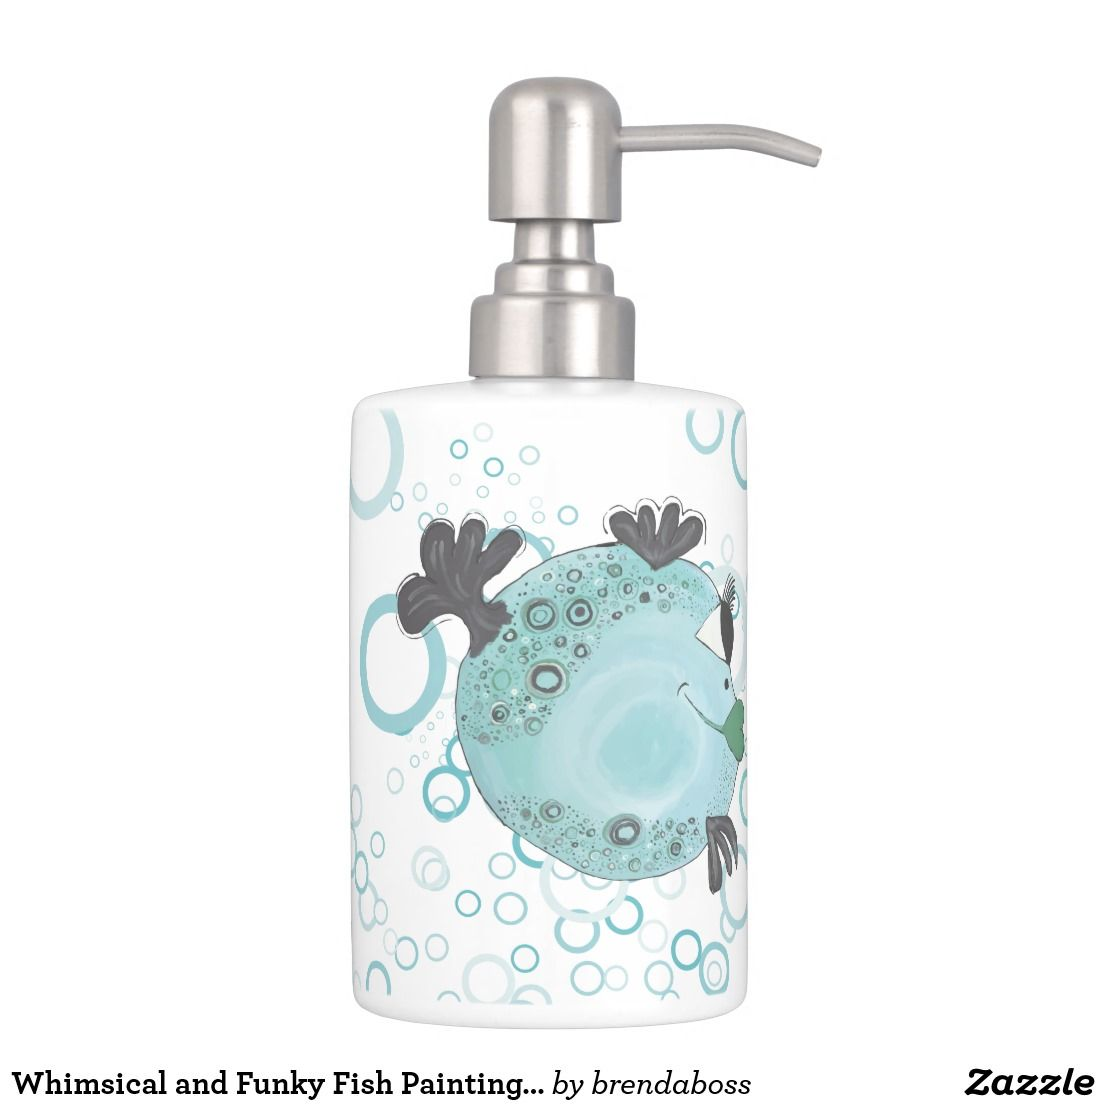 Whimsical and Funky Fish Painting in Teal Bath Set | Bath Accessory ...